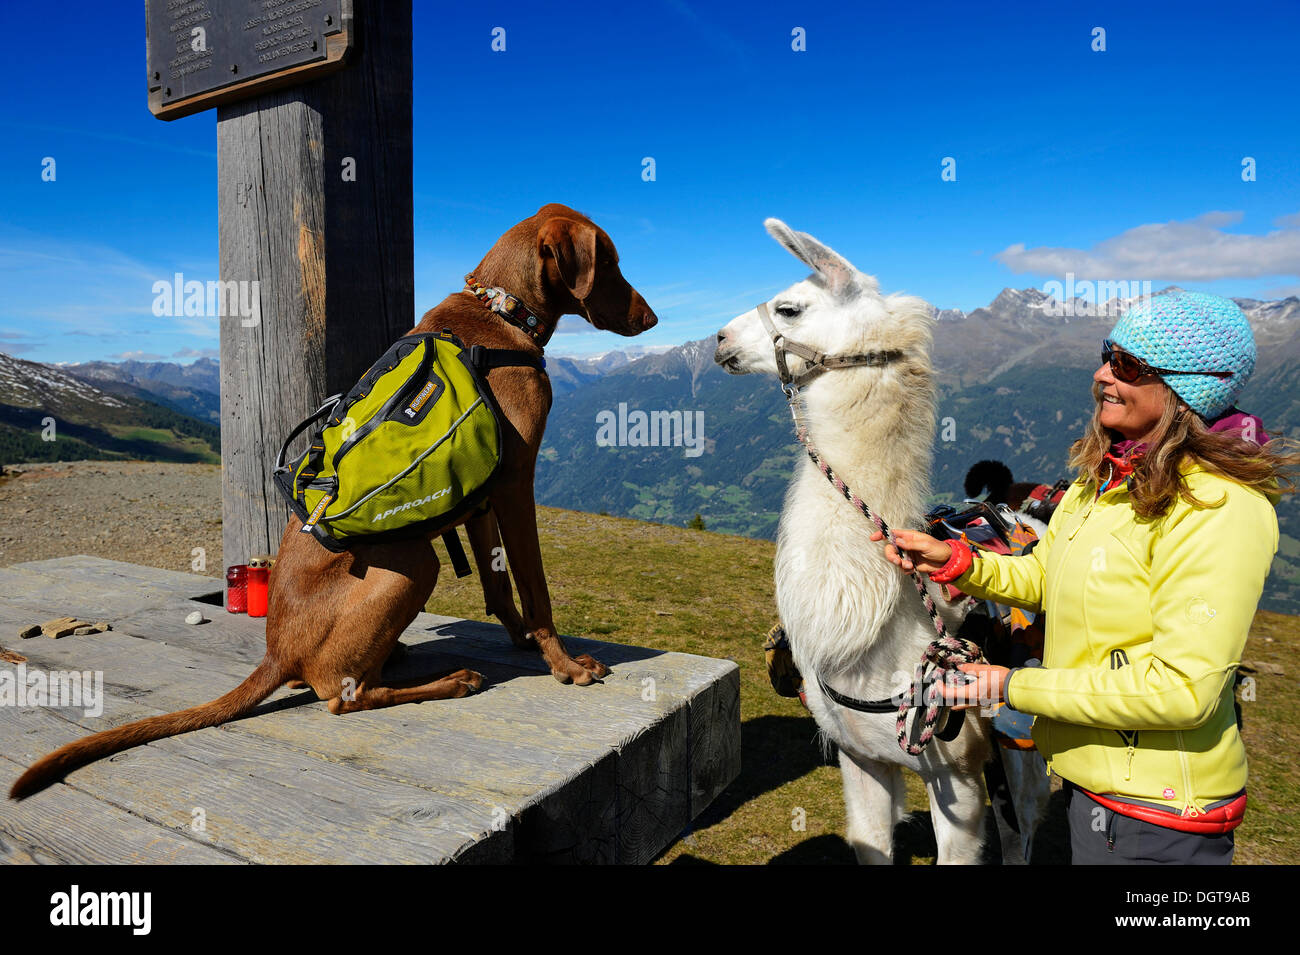 Female hiker with a llama and a dog, llama tour in the Defregger Group, Carnic Dolomites, Upper Lienz, Puster Valley, East Tyrol - Stock Image